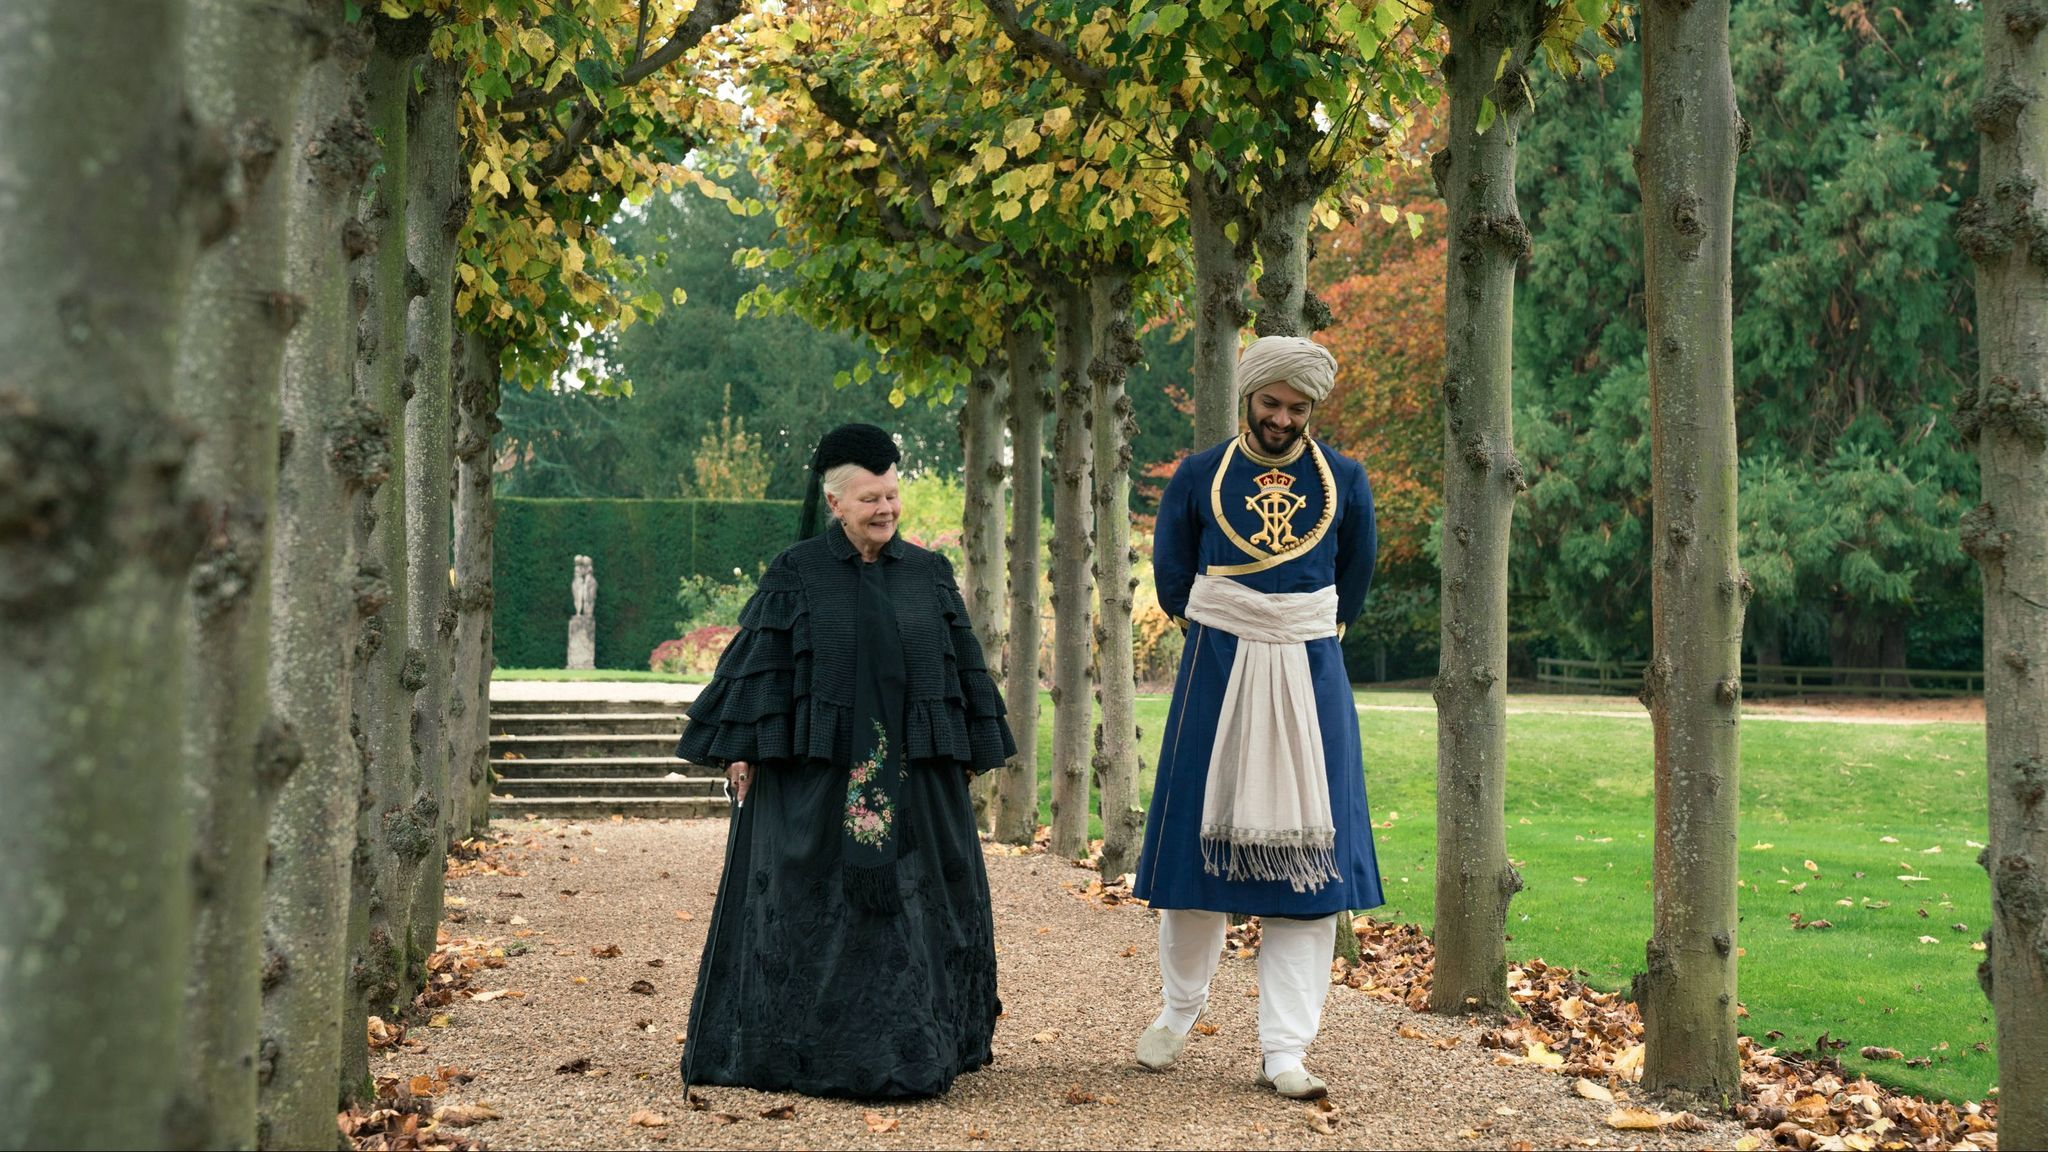 Judi Dench as Queen Victoria and Ali Fazal as Abdul Karim, the servant she befriends, in director Stephen Frears'